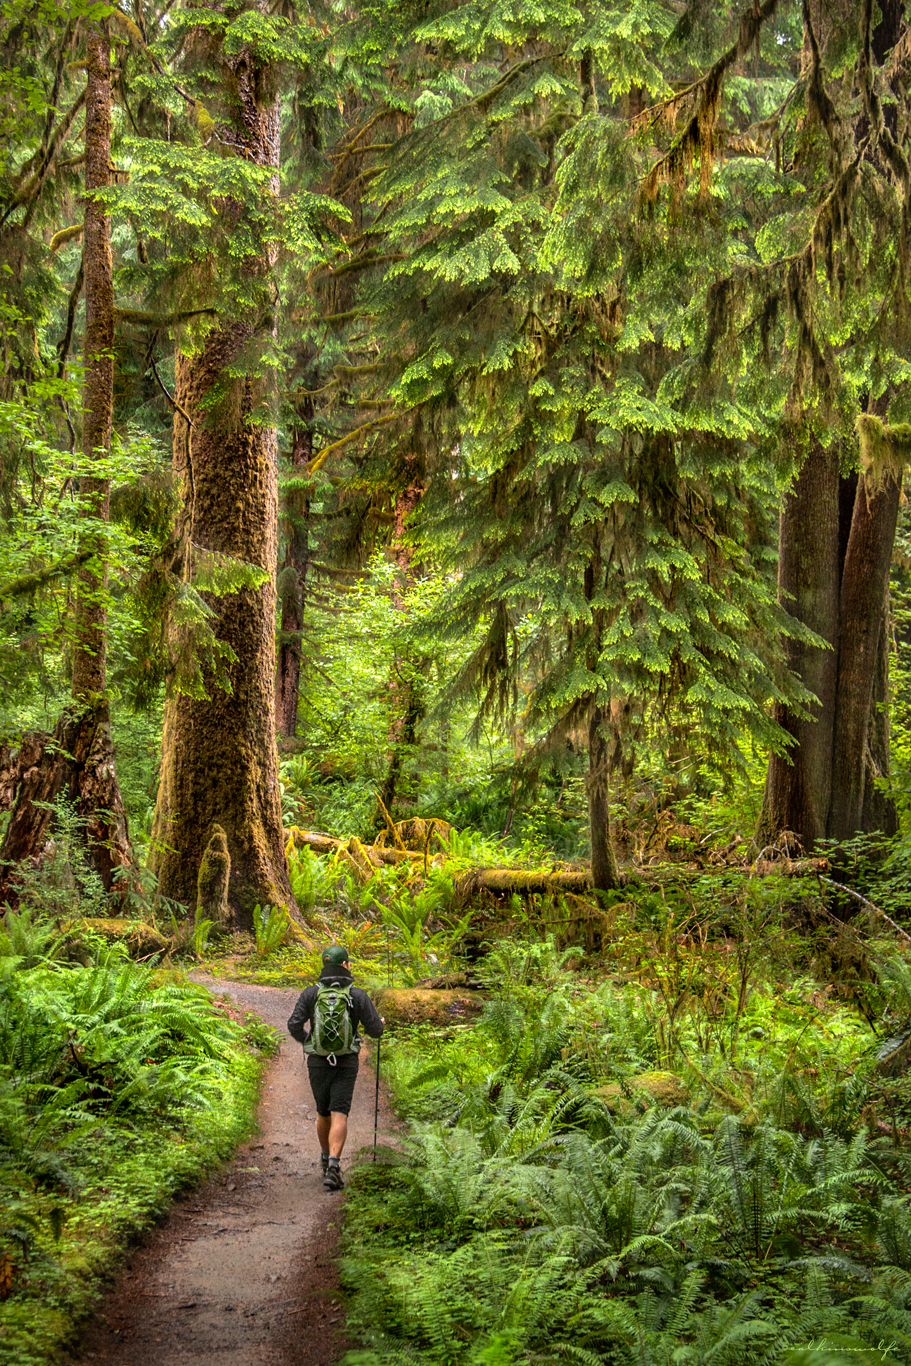 Hiking the Hoh Rainforest No. 2 - Washington state, 2012